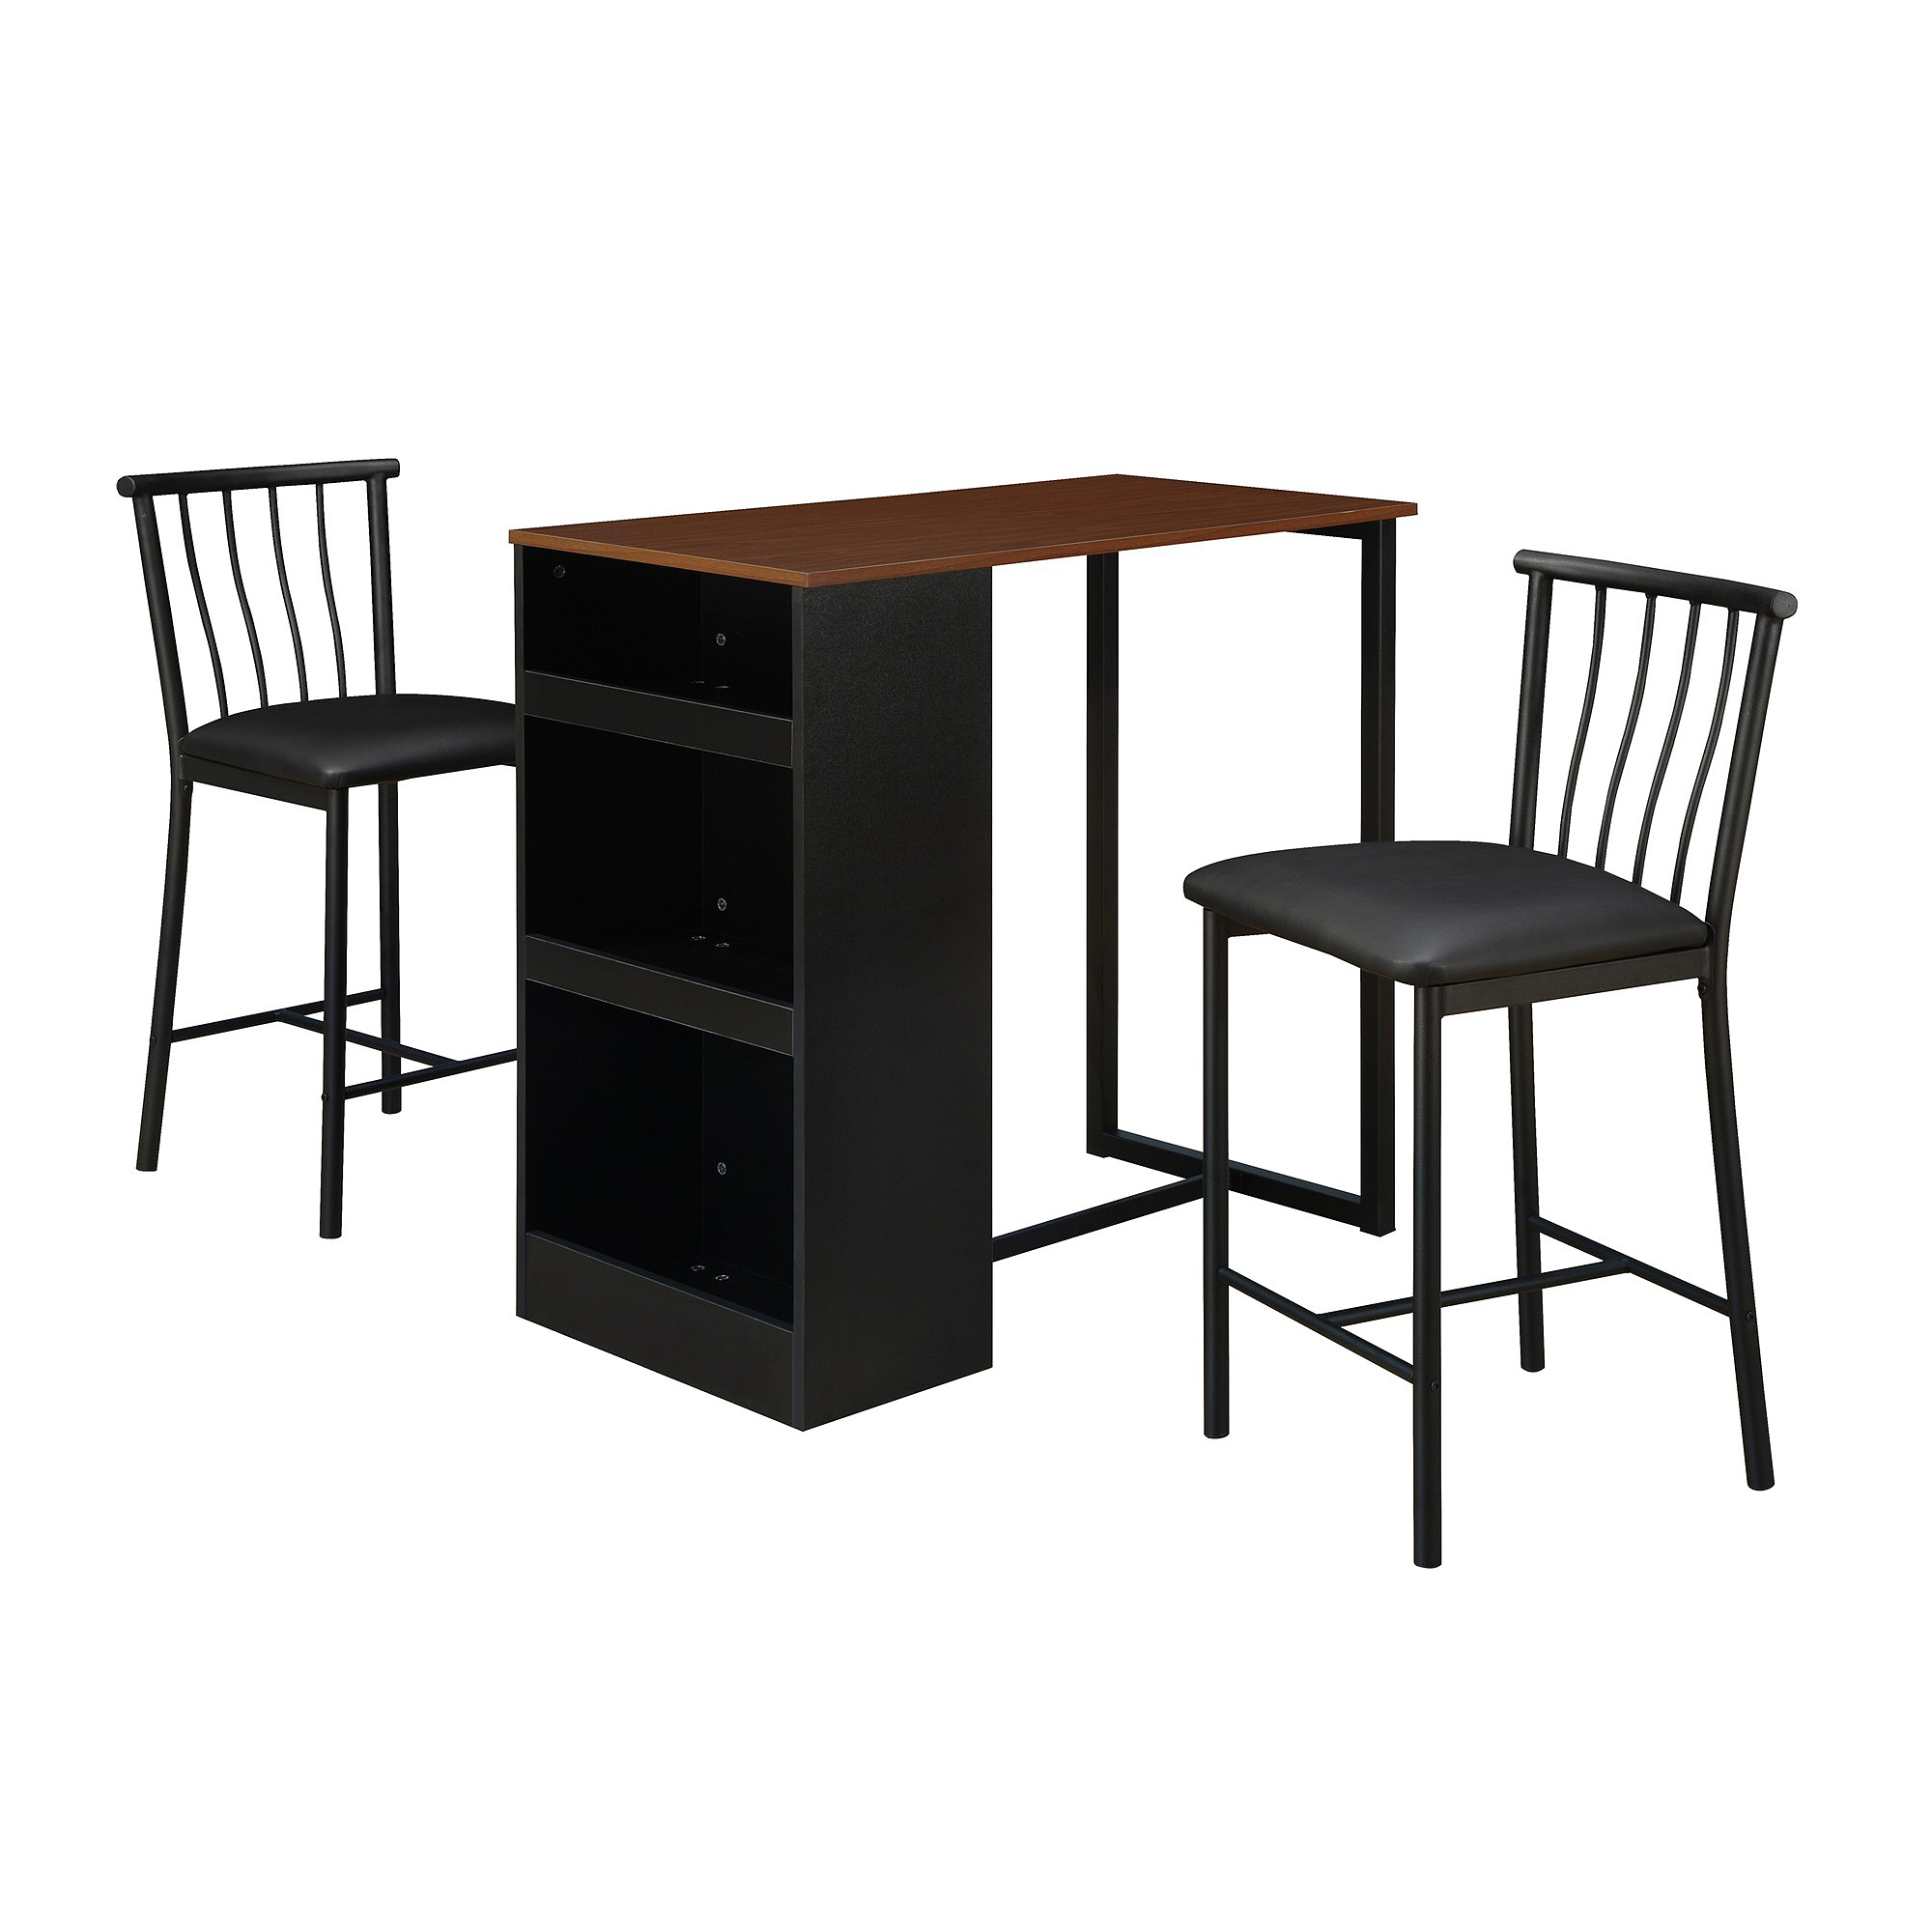 Dorel Living Isla 3 Piece Counter Height Dining Set With Storage, Espresso    Walmart.com